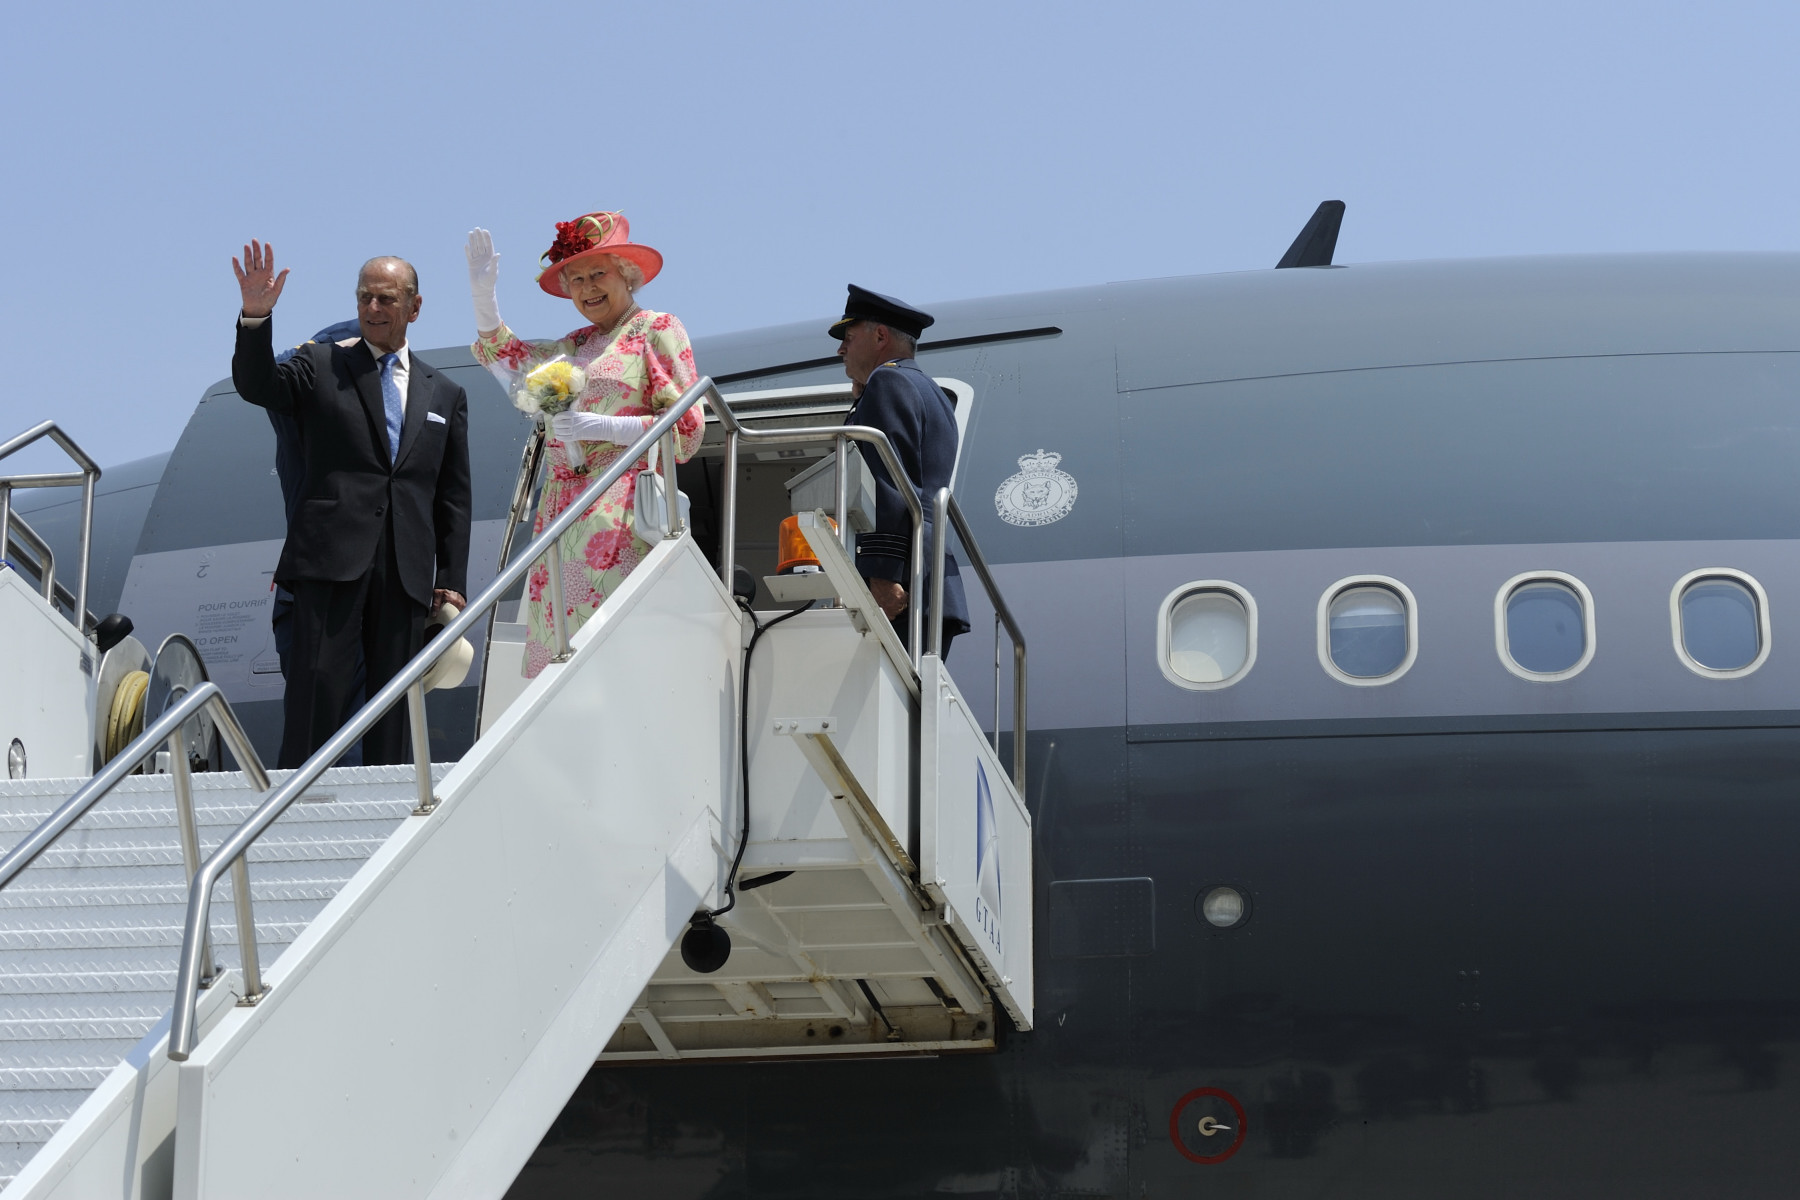 The Queen and The Duke of Edinburgh departed Canada for New York City, marking the end of Her Majesty The Queen's 22nd tour of Canada.